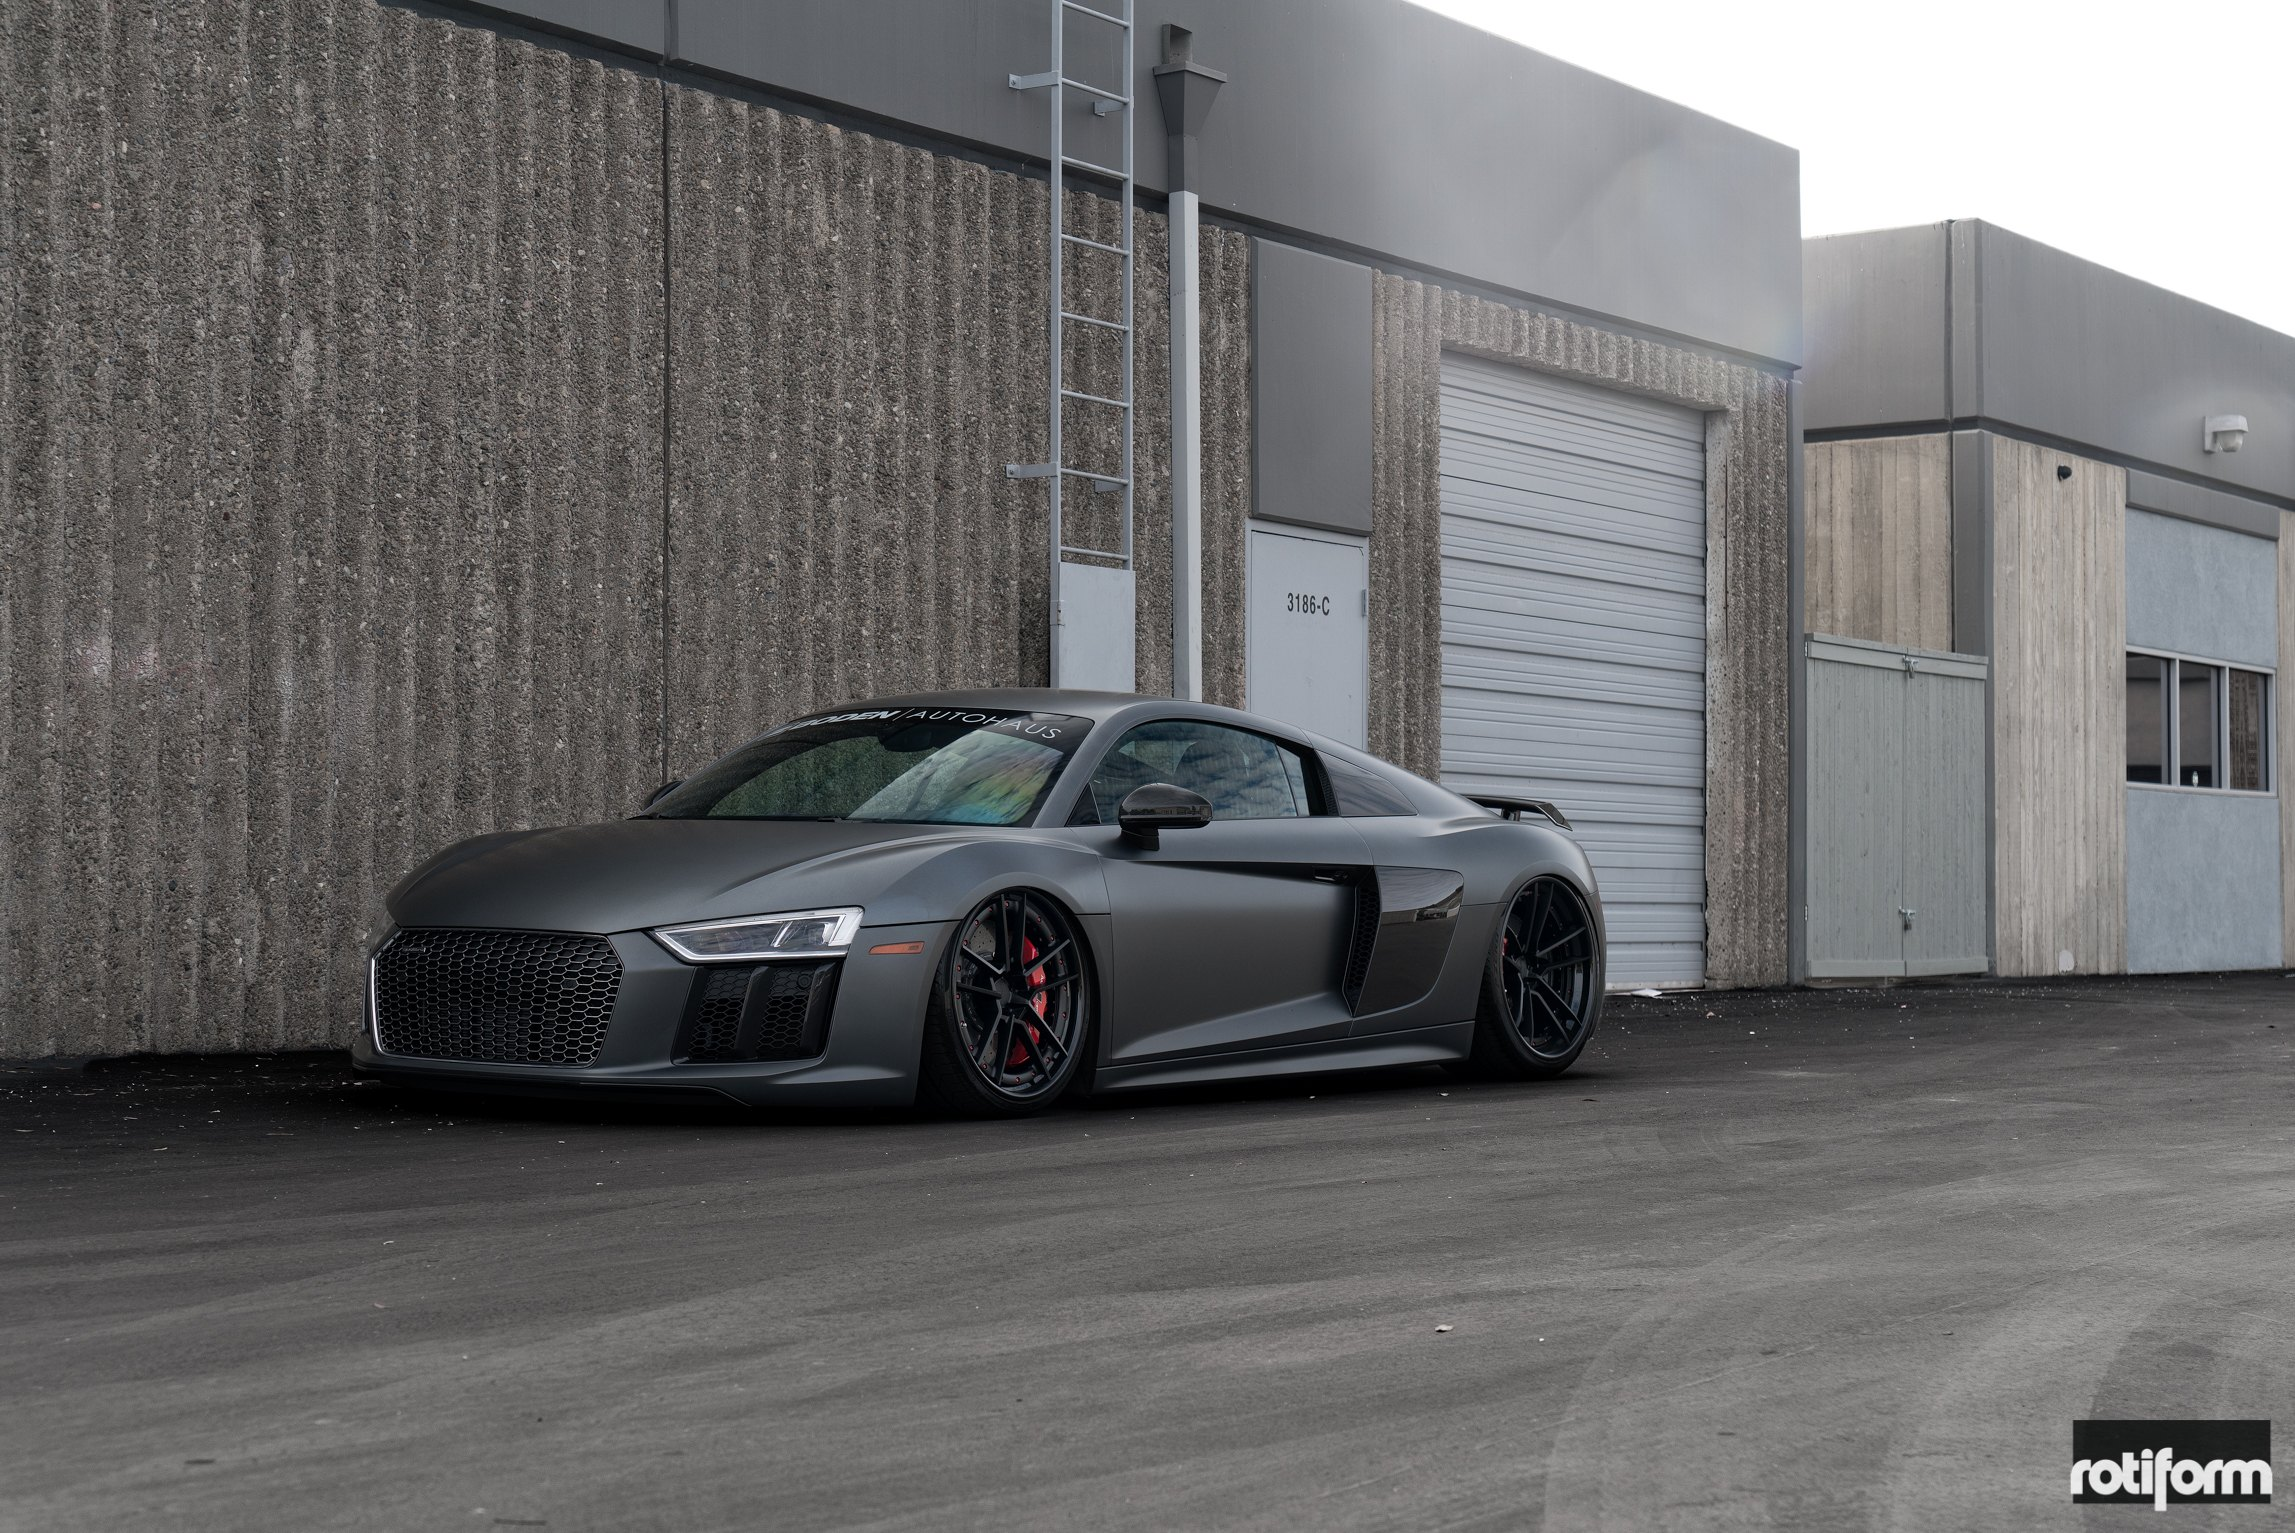 Mighty matte black audi r8 with custom body kit and air suspension gray matte audi r8 with custom front bumper photo by rotiform publicscrutiny Choice Image